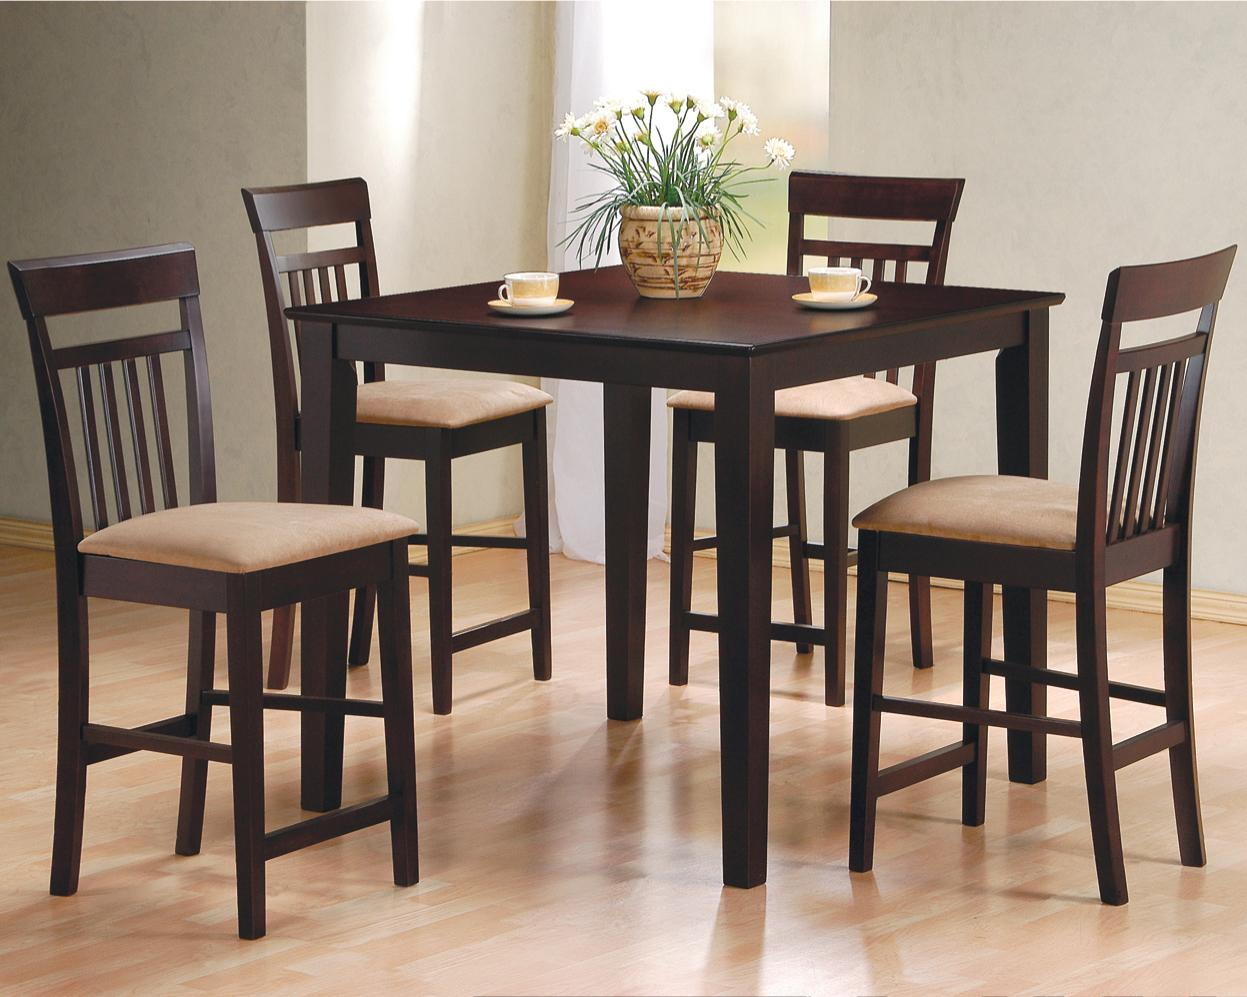 Roman Counter Height 5PC Dining Set : 5pc dining table set - pezcame.com